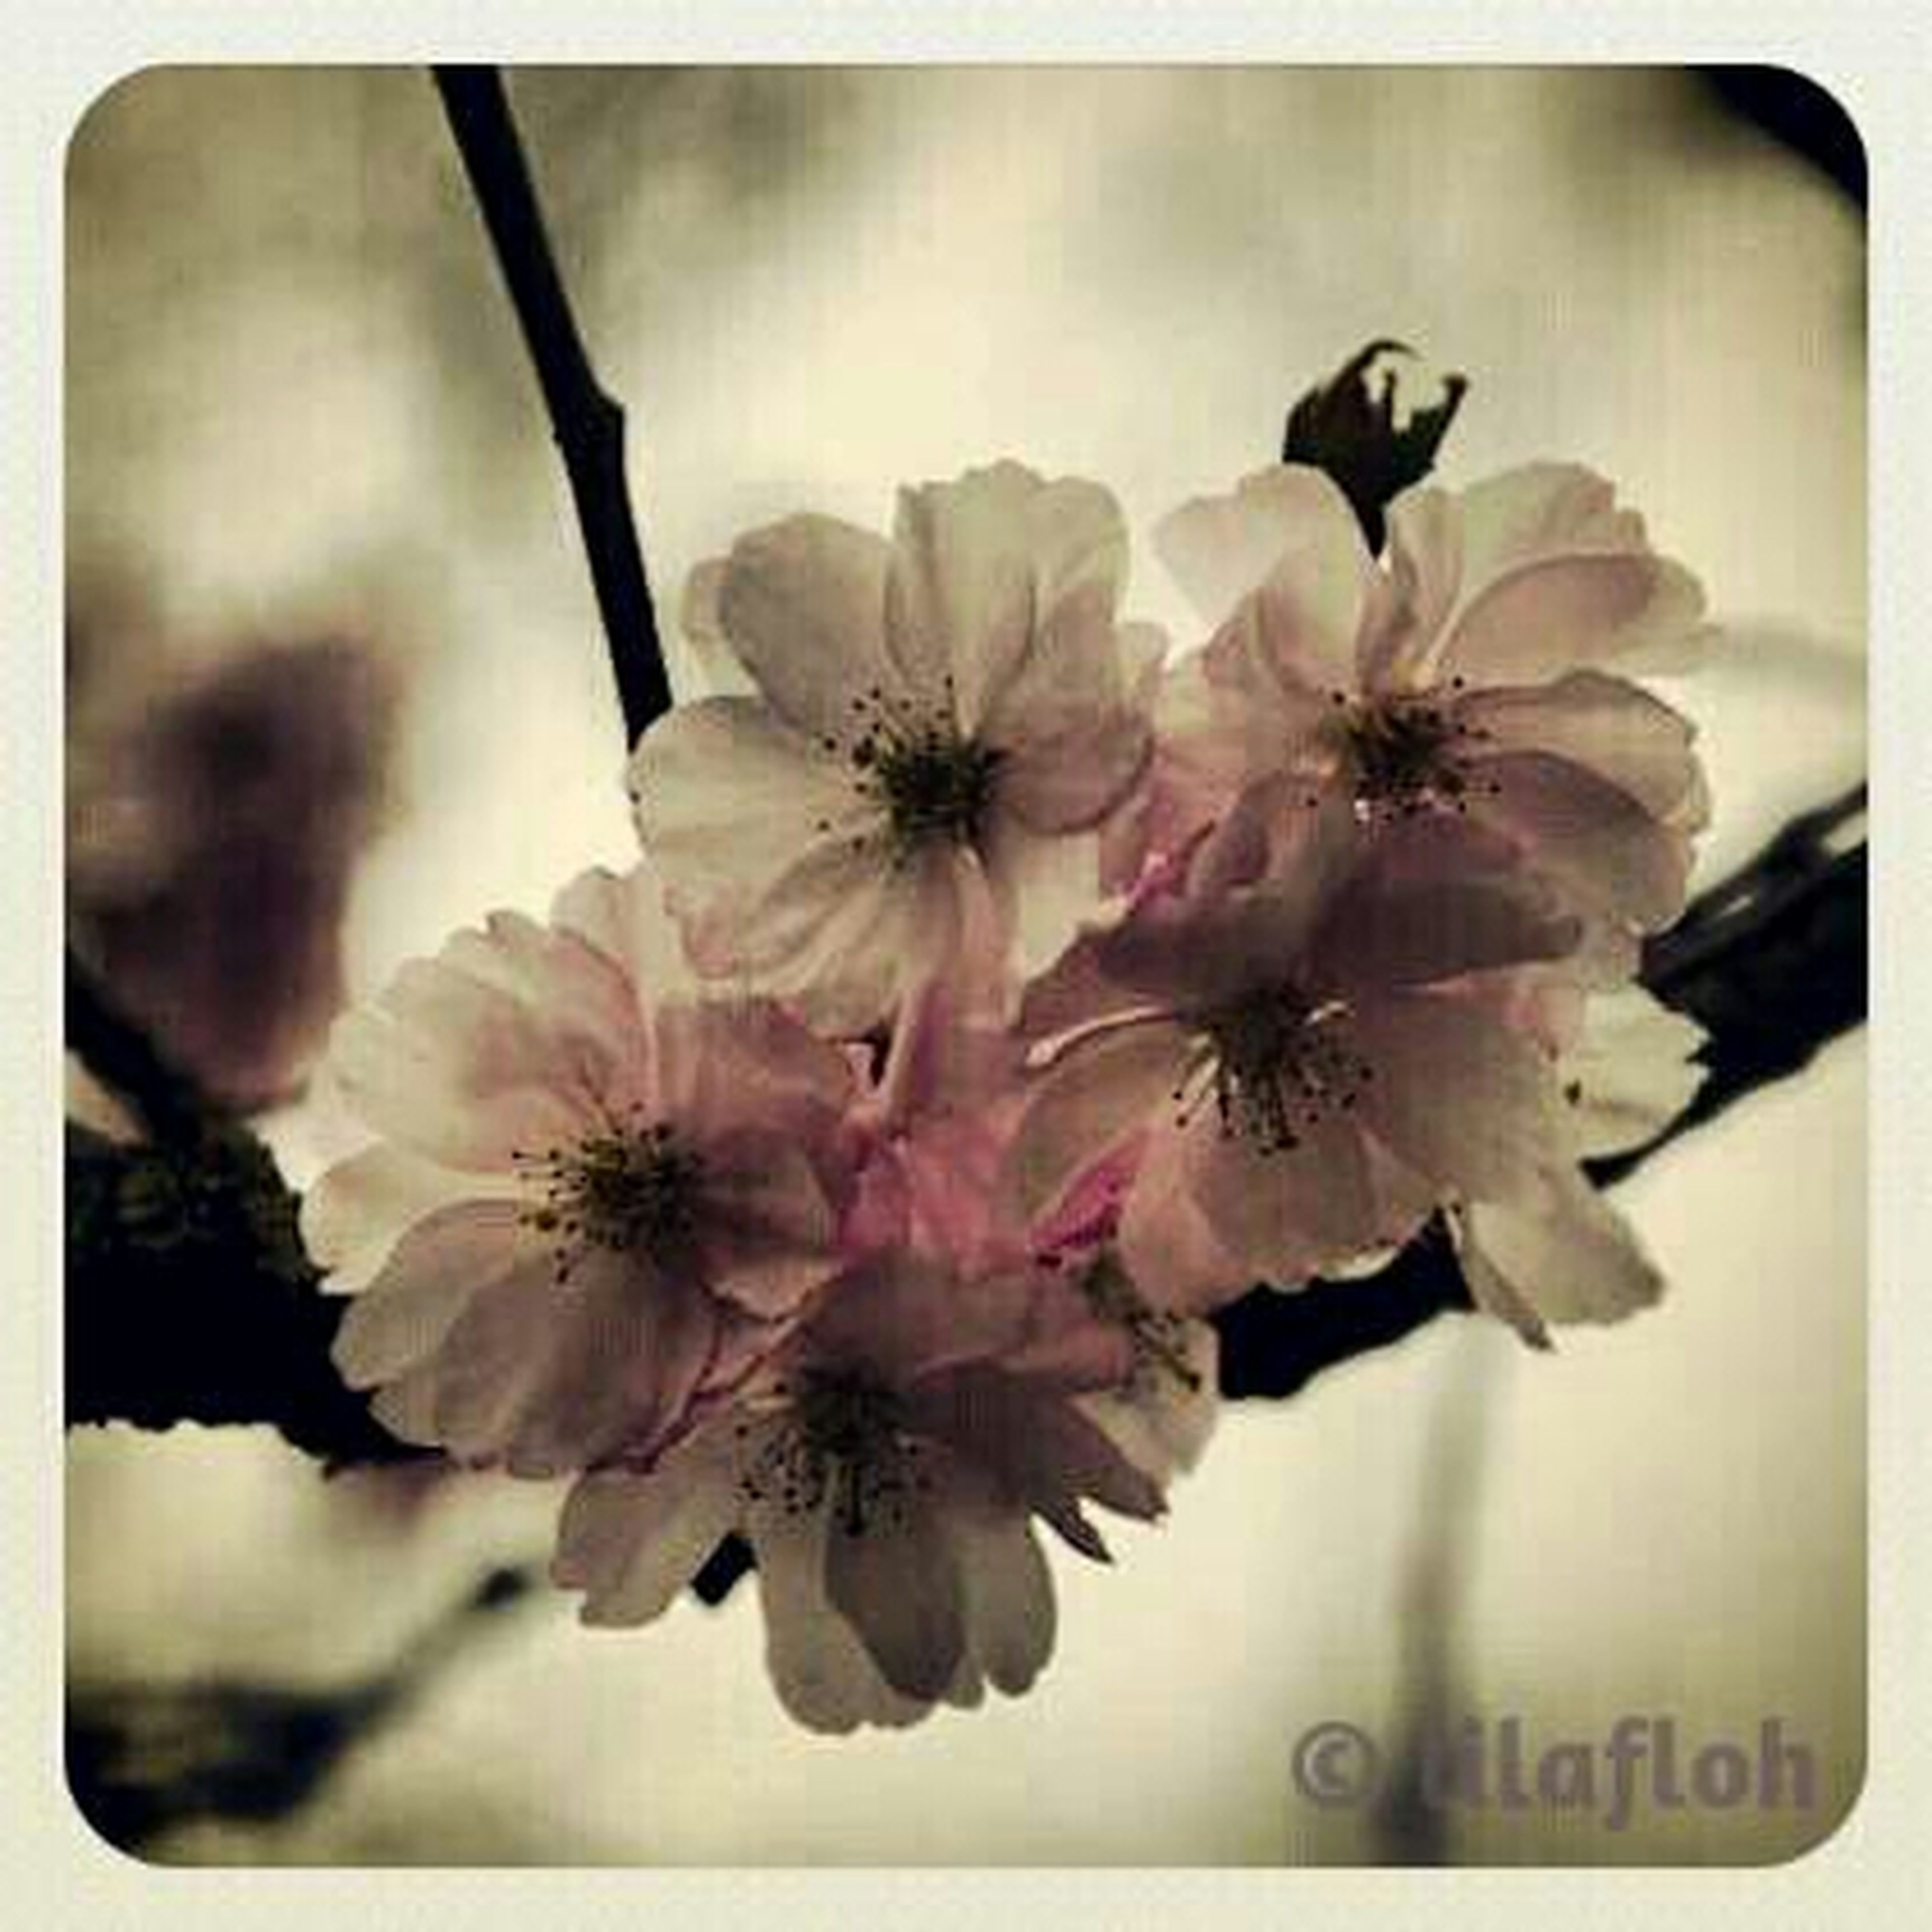 flower, freshness, fragility, petal, transfer print, growth, flower head, beauty in nature, auto post production filter, close-up, nature, blossom, in bloom, blooming, focus on foreground, stamen, white color, cherry blossom, branch, springtime